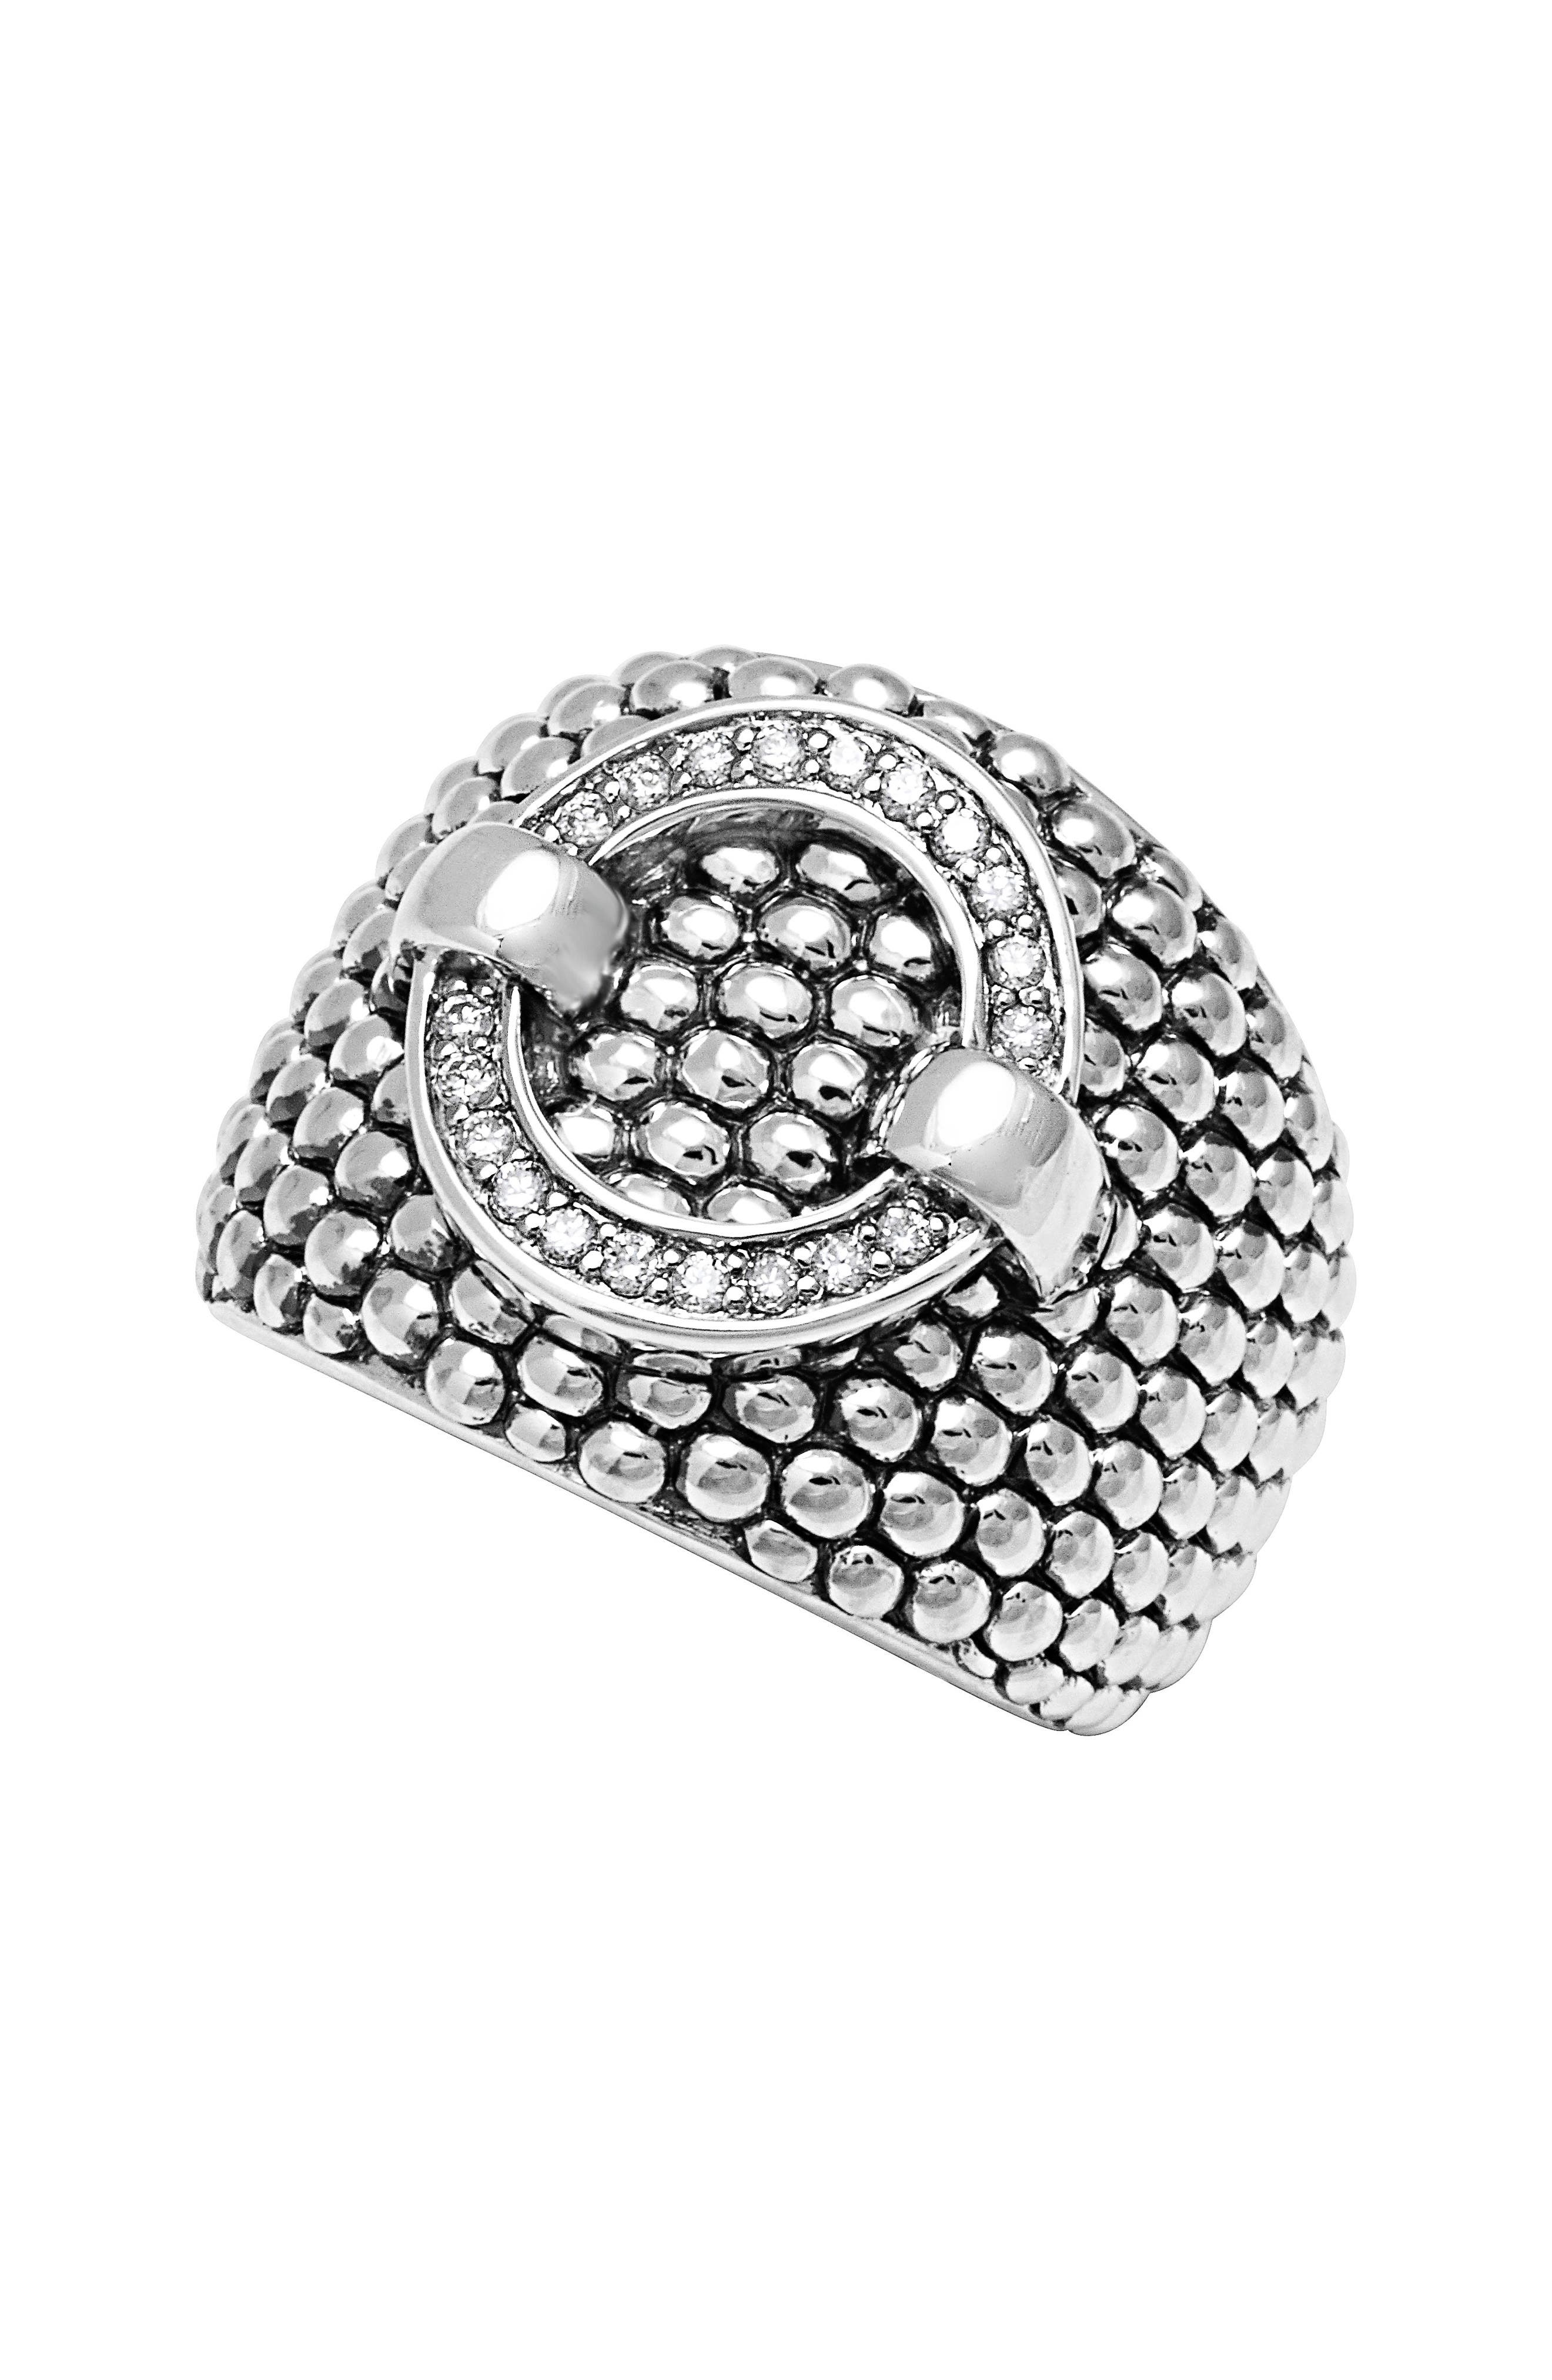 'Enso' Diamond Statement Ring,                             Main thumbnail 1, color,                             040